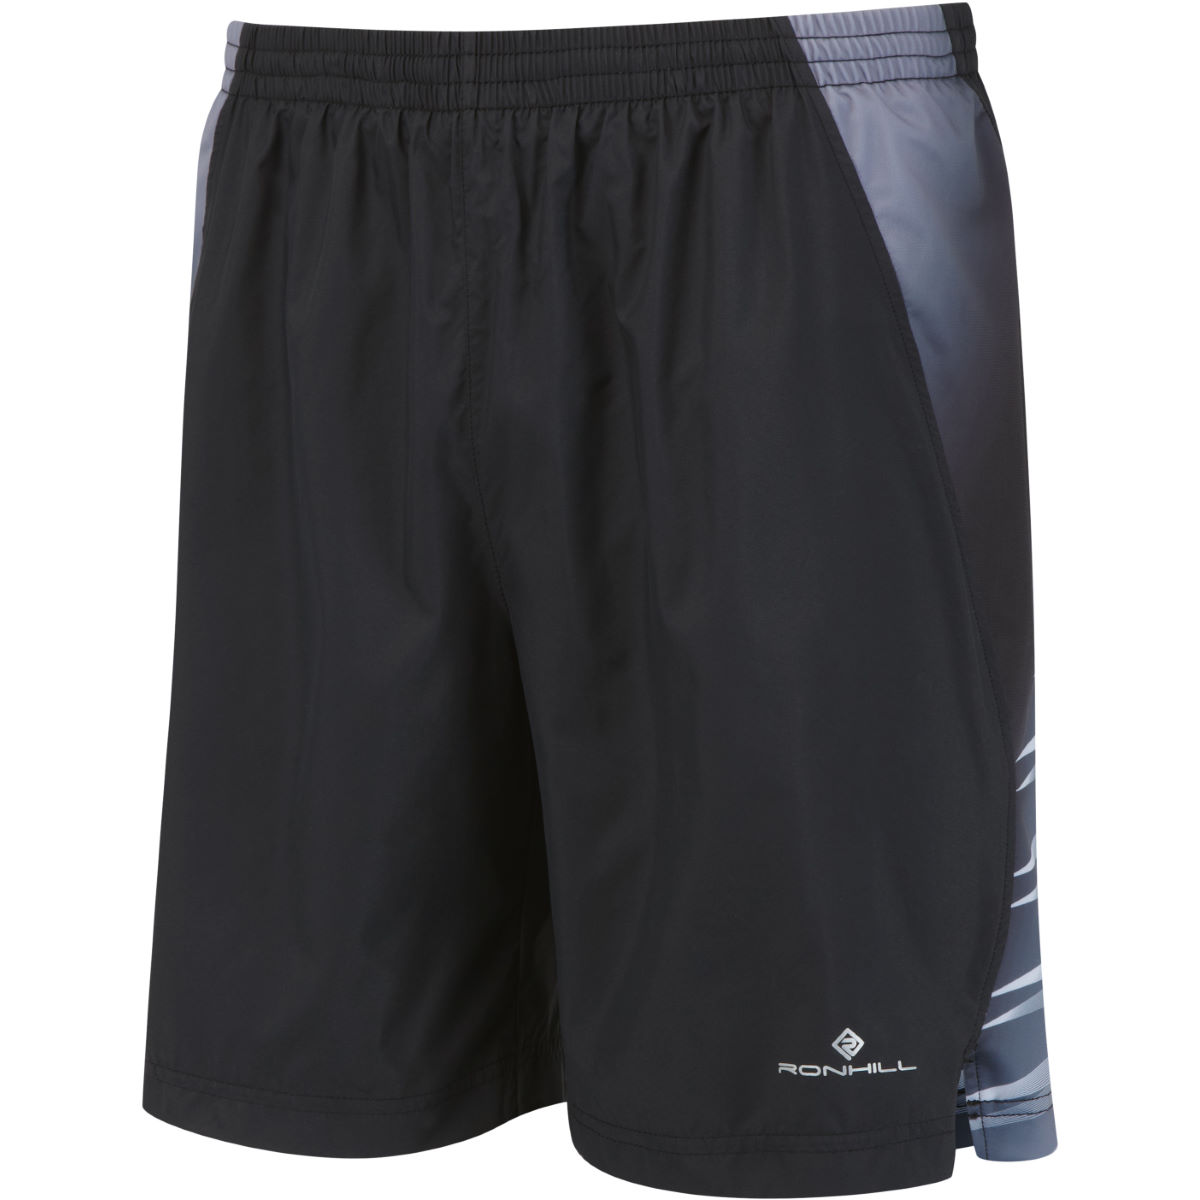 """""""Ronhill Advance 7"""""""" Short (SS16) - Extra Large All Black"""""""